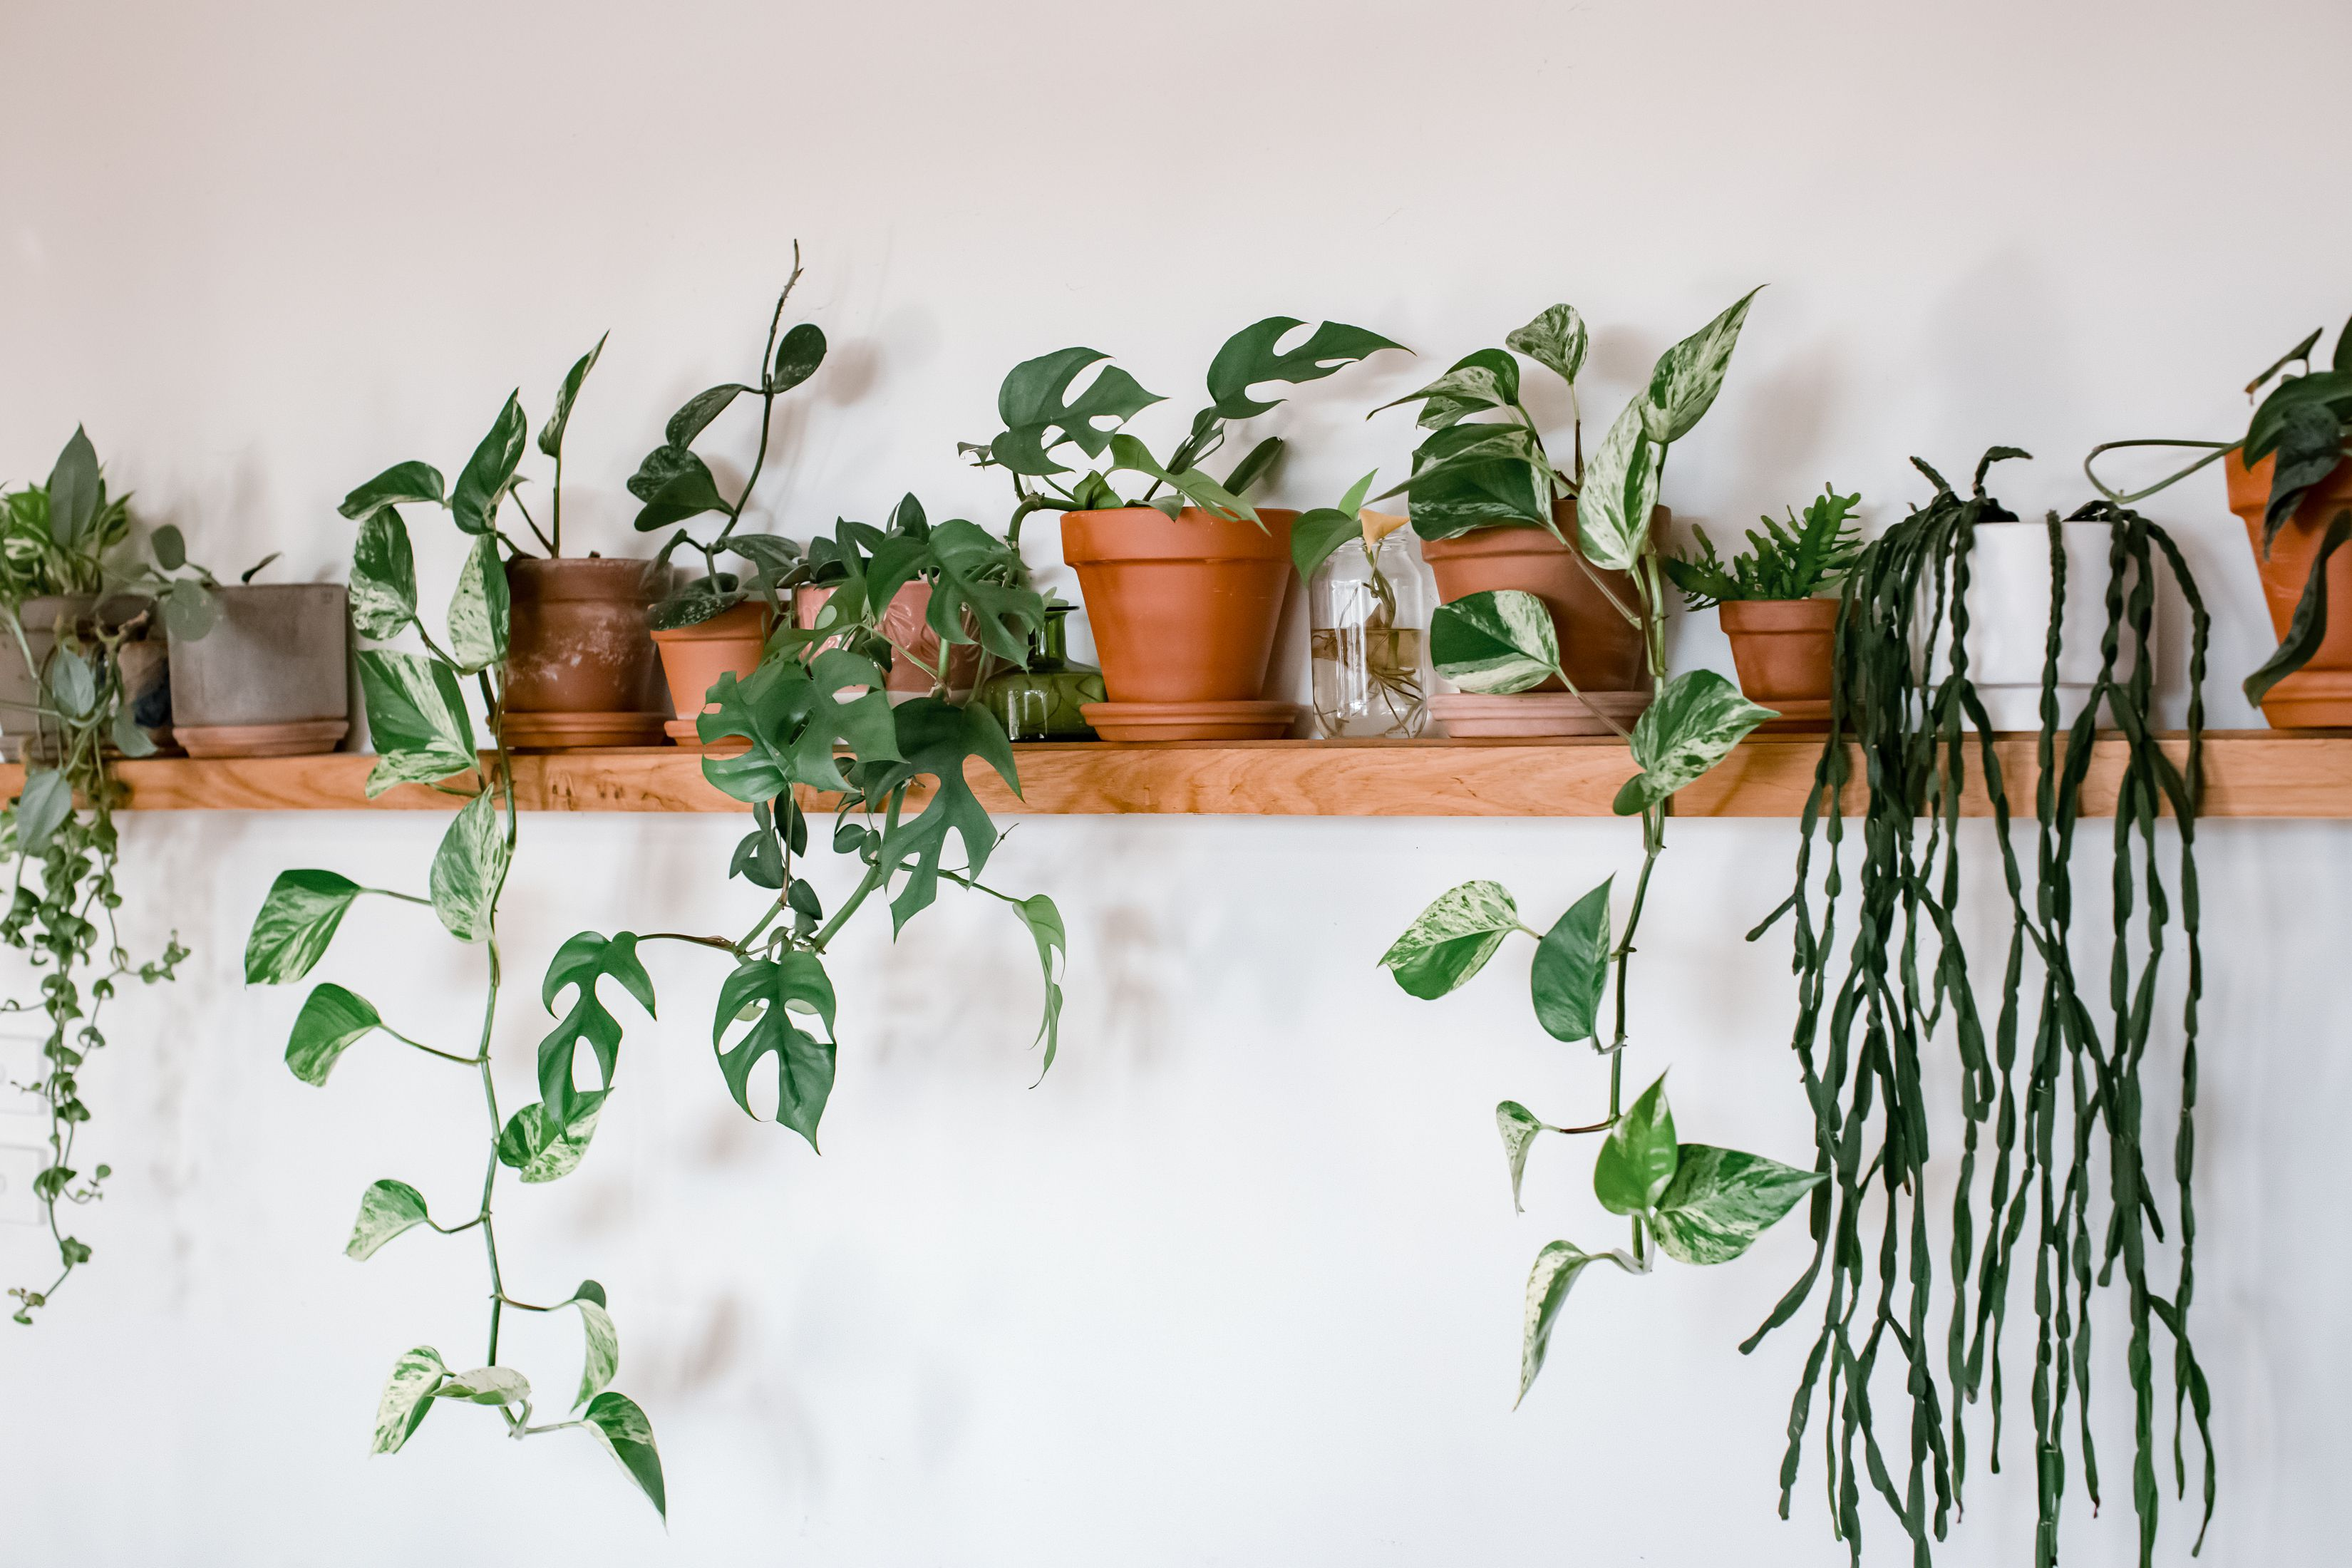 5 Houseplants Perfect for the First-Time Plant Parent